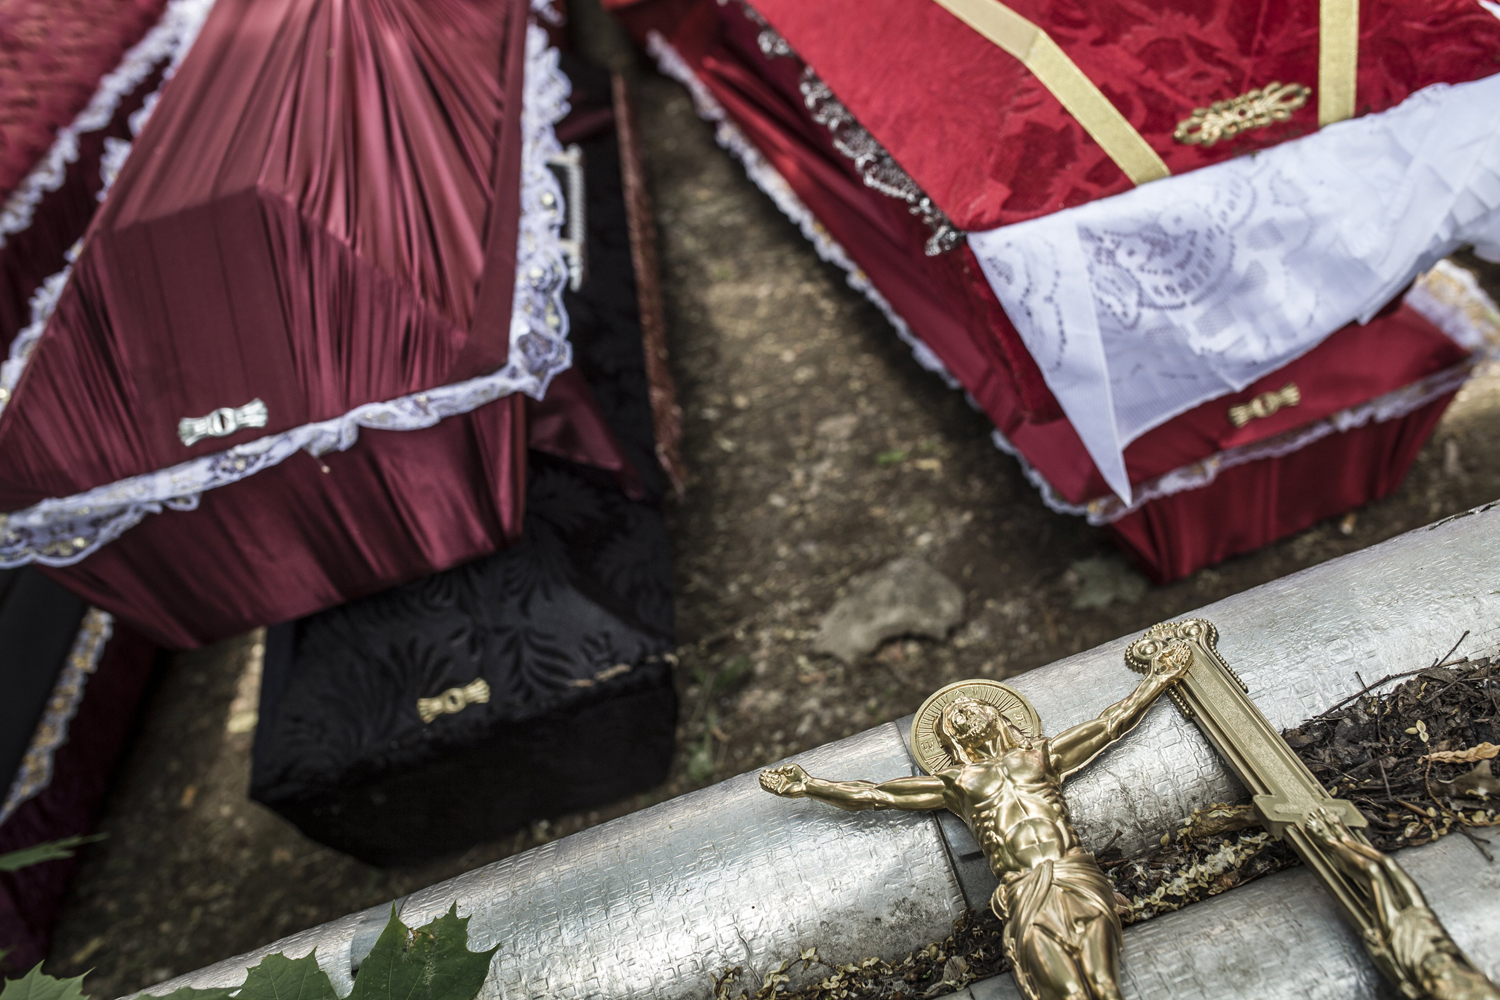 May 29, 2014. Coffins of members of the Vostok Battallion, who were killed in clashes at the airport, in Donetsk, Ukraine.